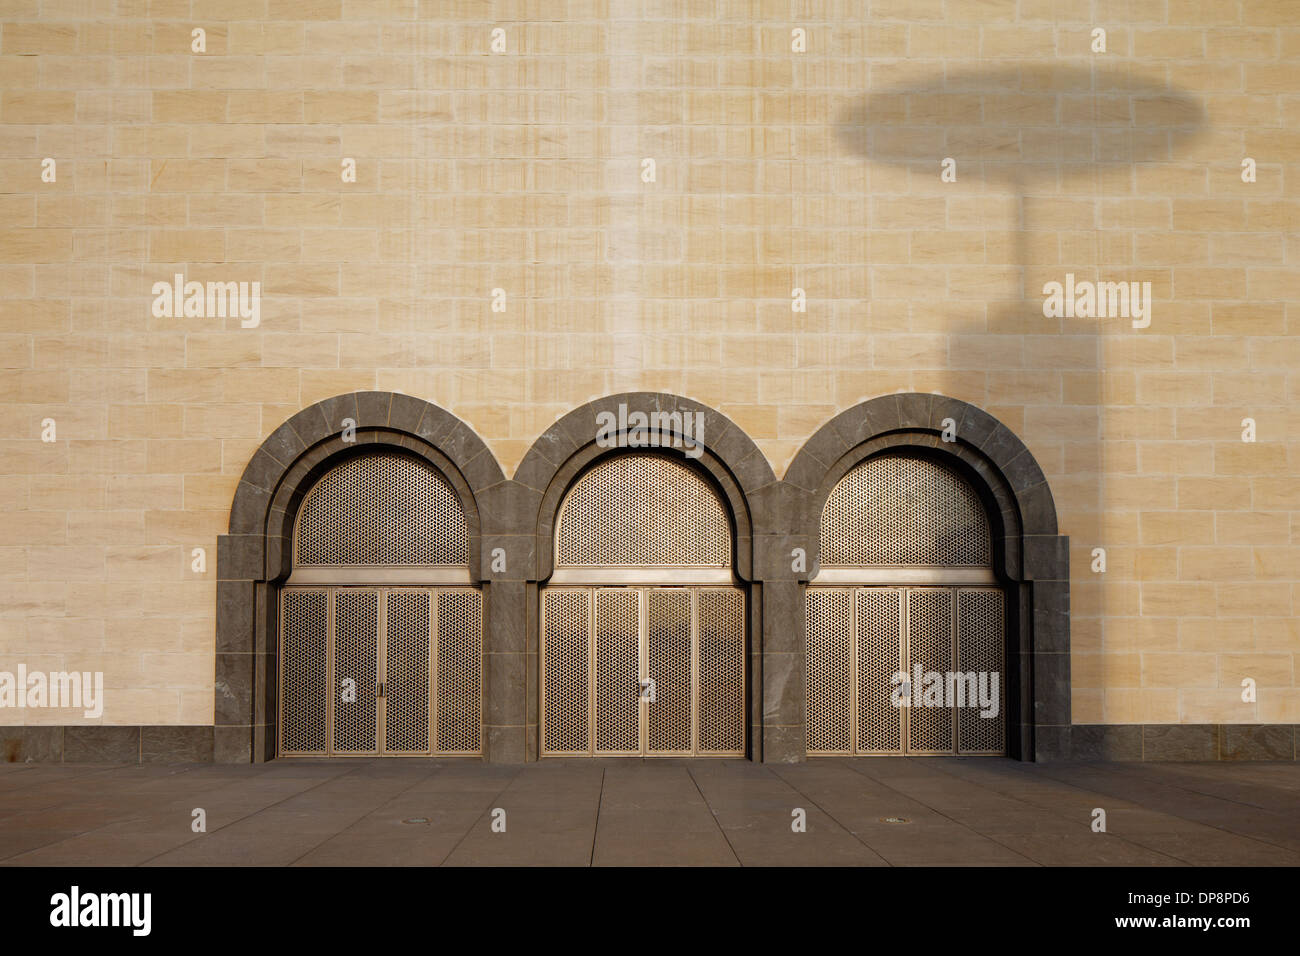 Doha Qatar: A shadow from the iconic lamps is cast over arched doors of the Museum of Islamic Art - Stock Image